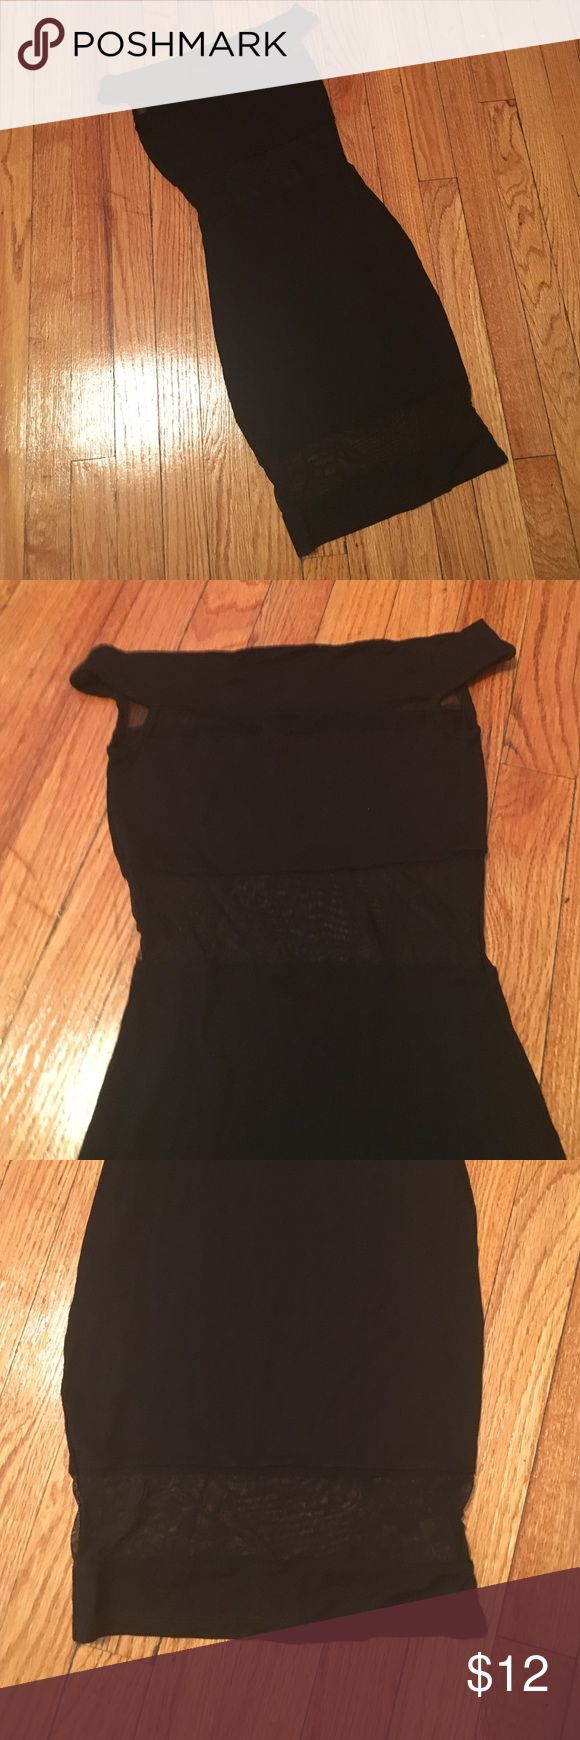 ASOS PETITE BodyCon Dress w/Sheer Detail Excellent condition; no tears, rips or smells; sheer paneling at midsection and at knee ASOS Petite Dresses Midi